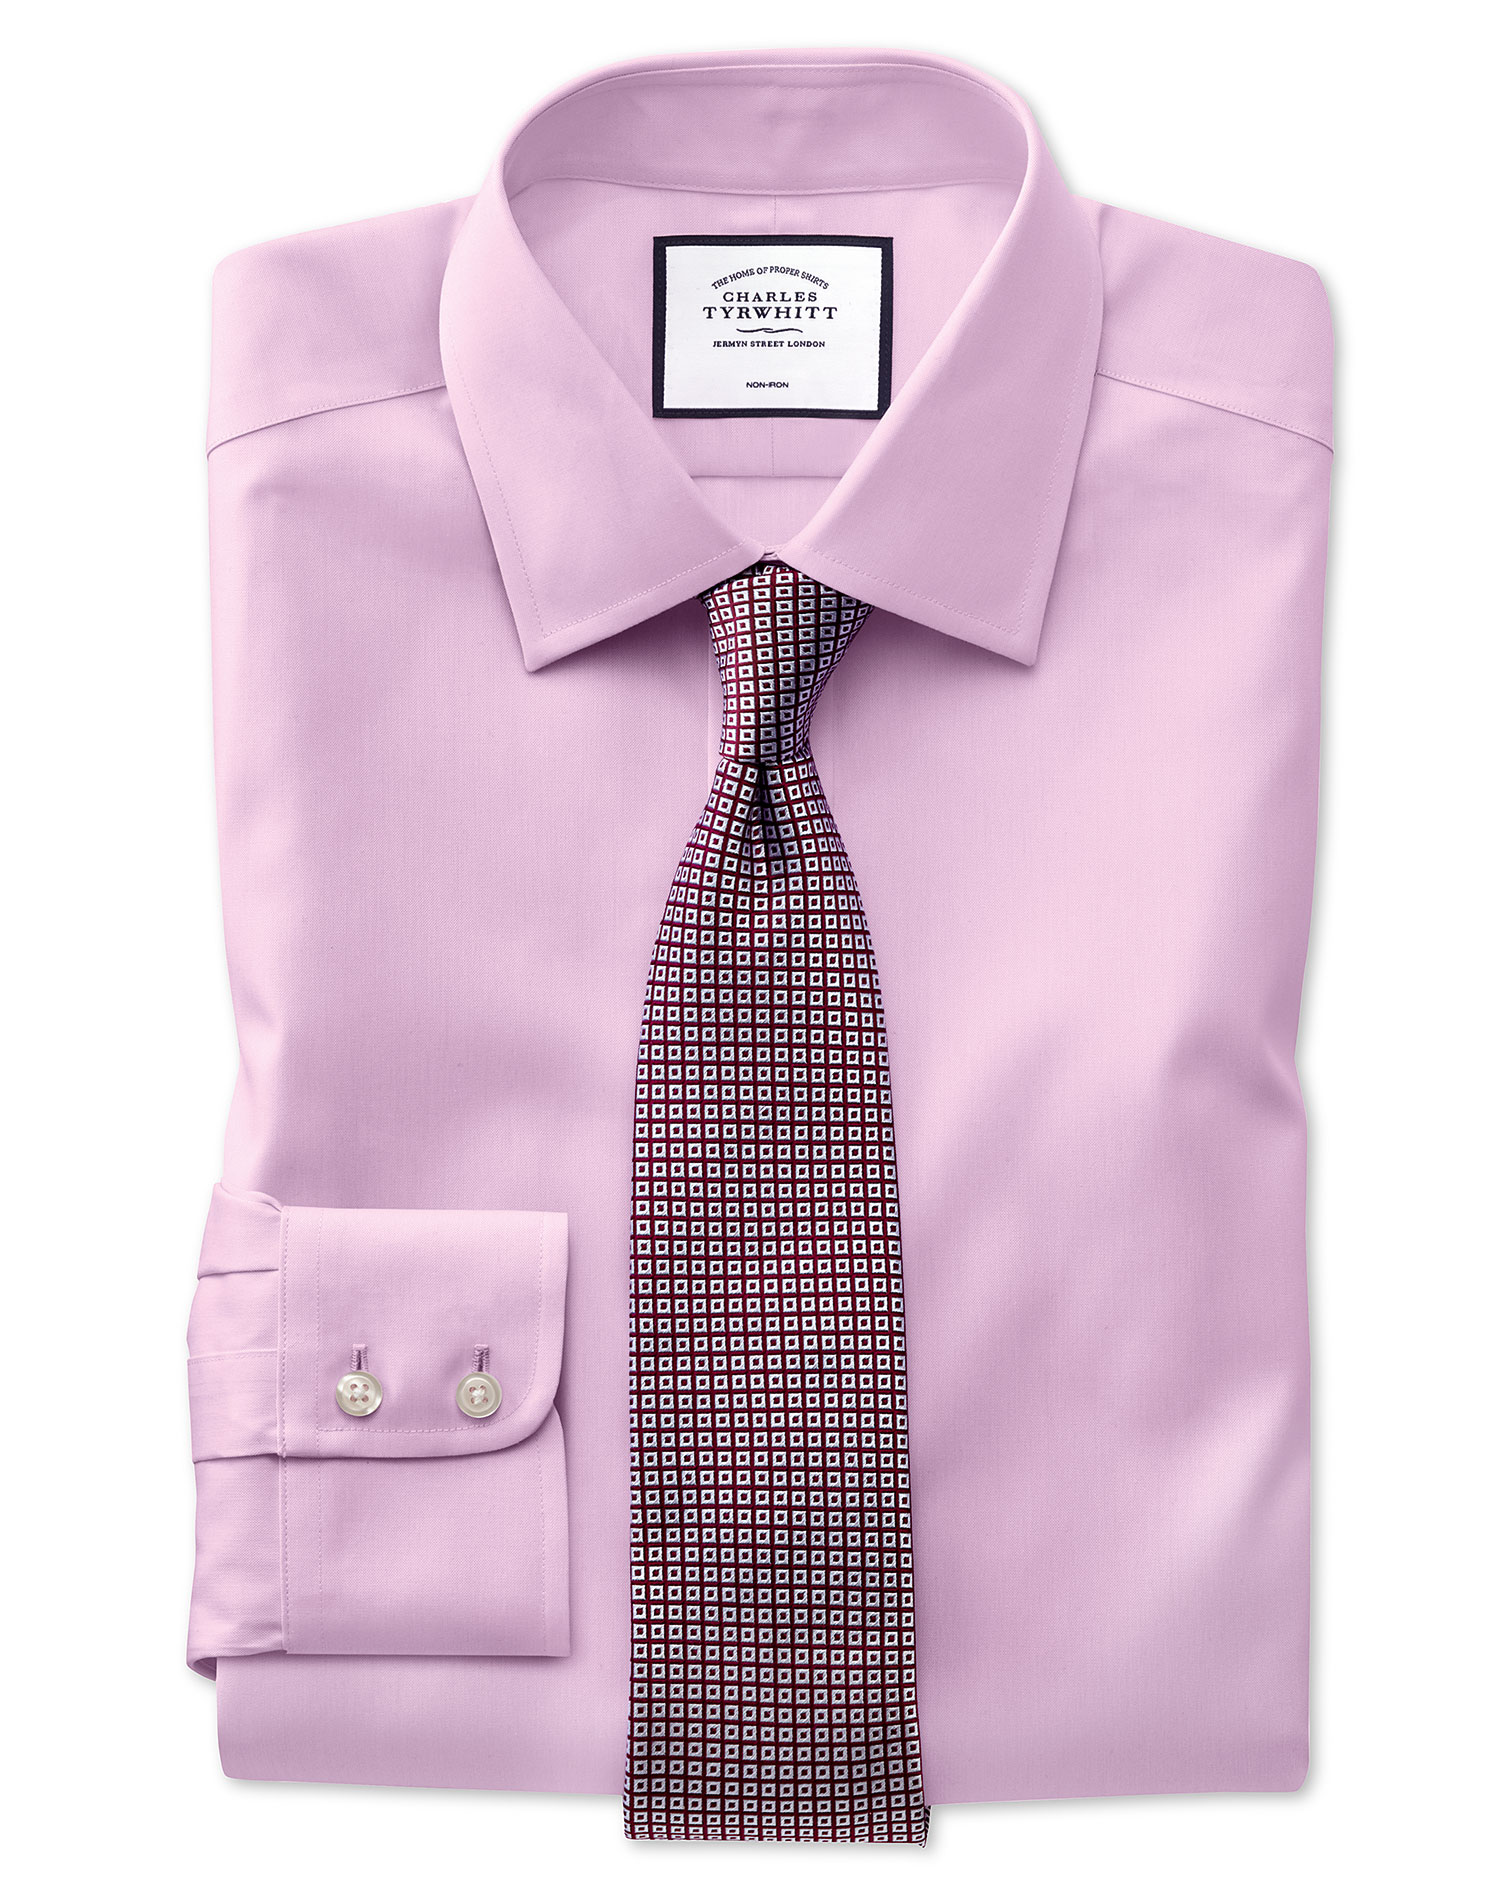 Classic Fit Pink Non-Iron Pinpoint Oxford Cotton Formal Shirt Single Cuff Size 17/35 by Charles Tyrw